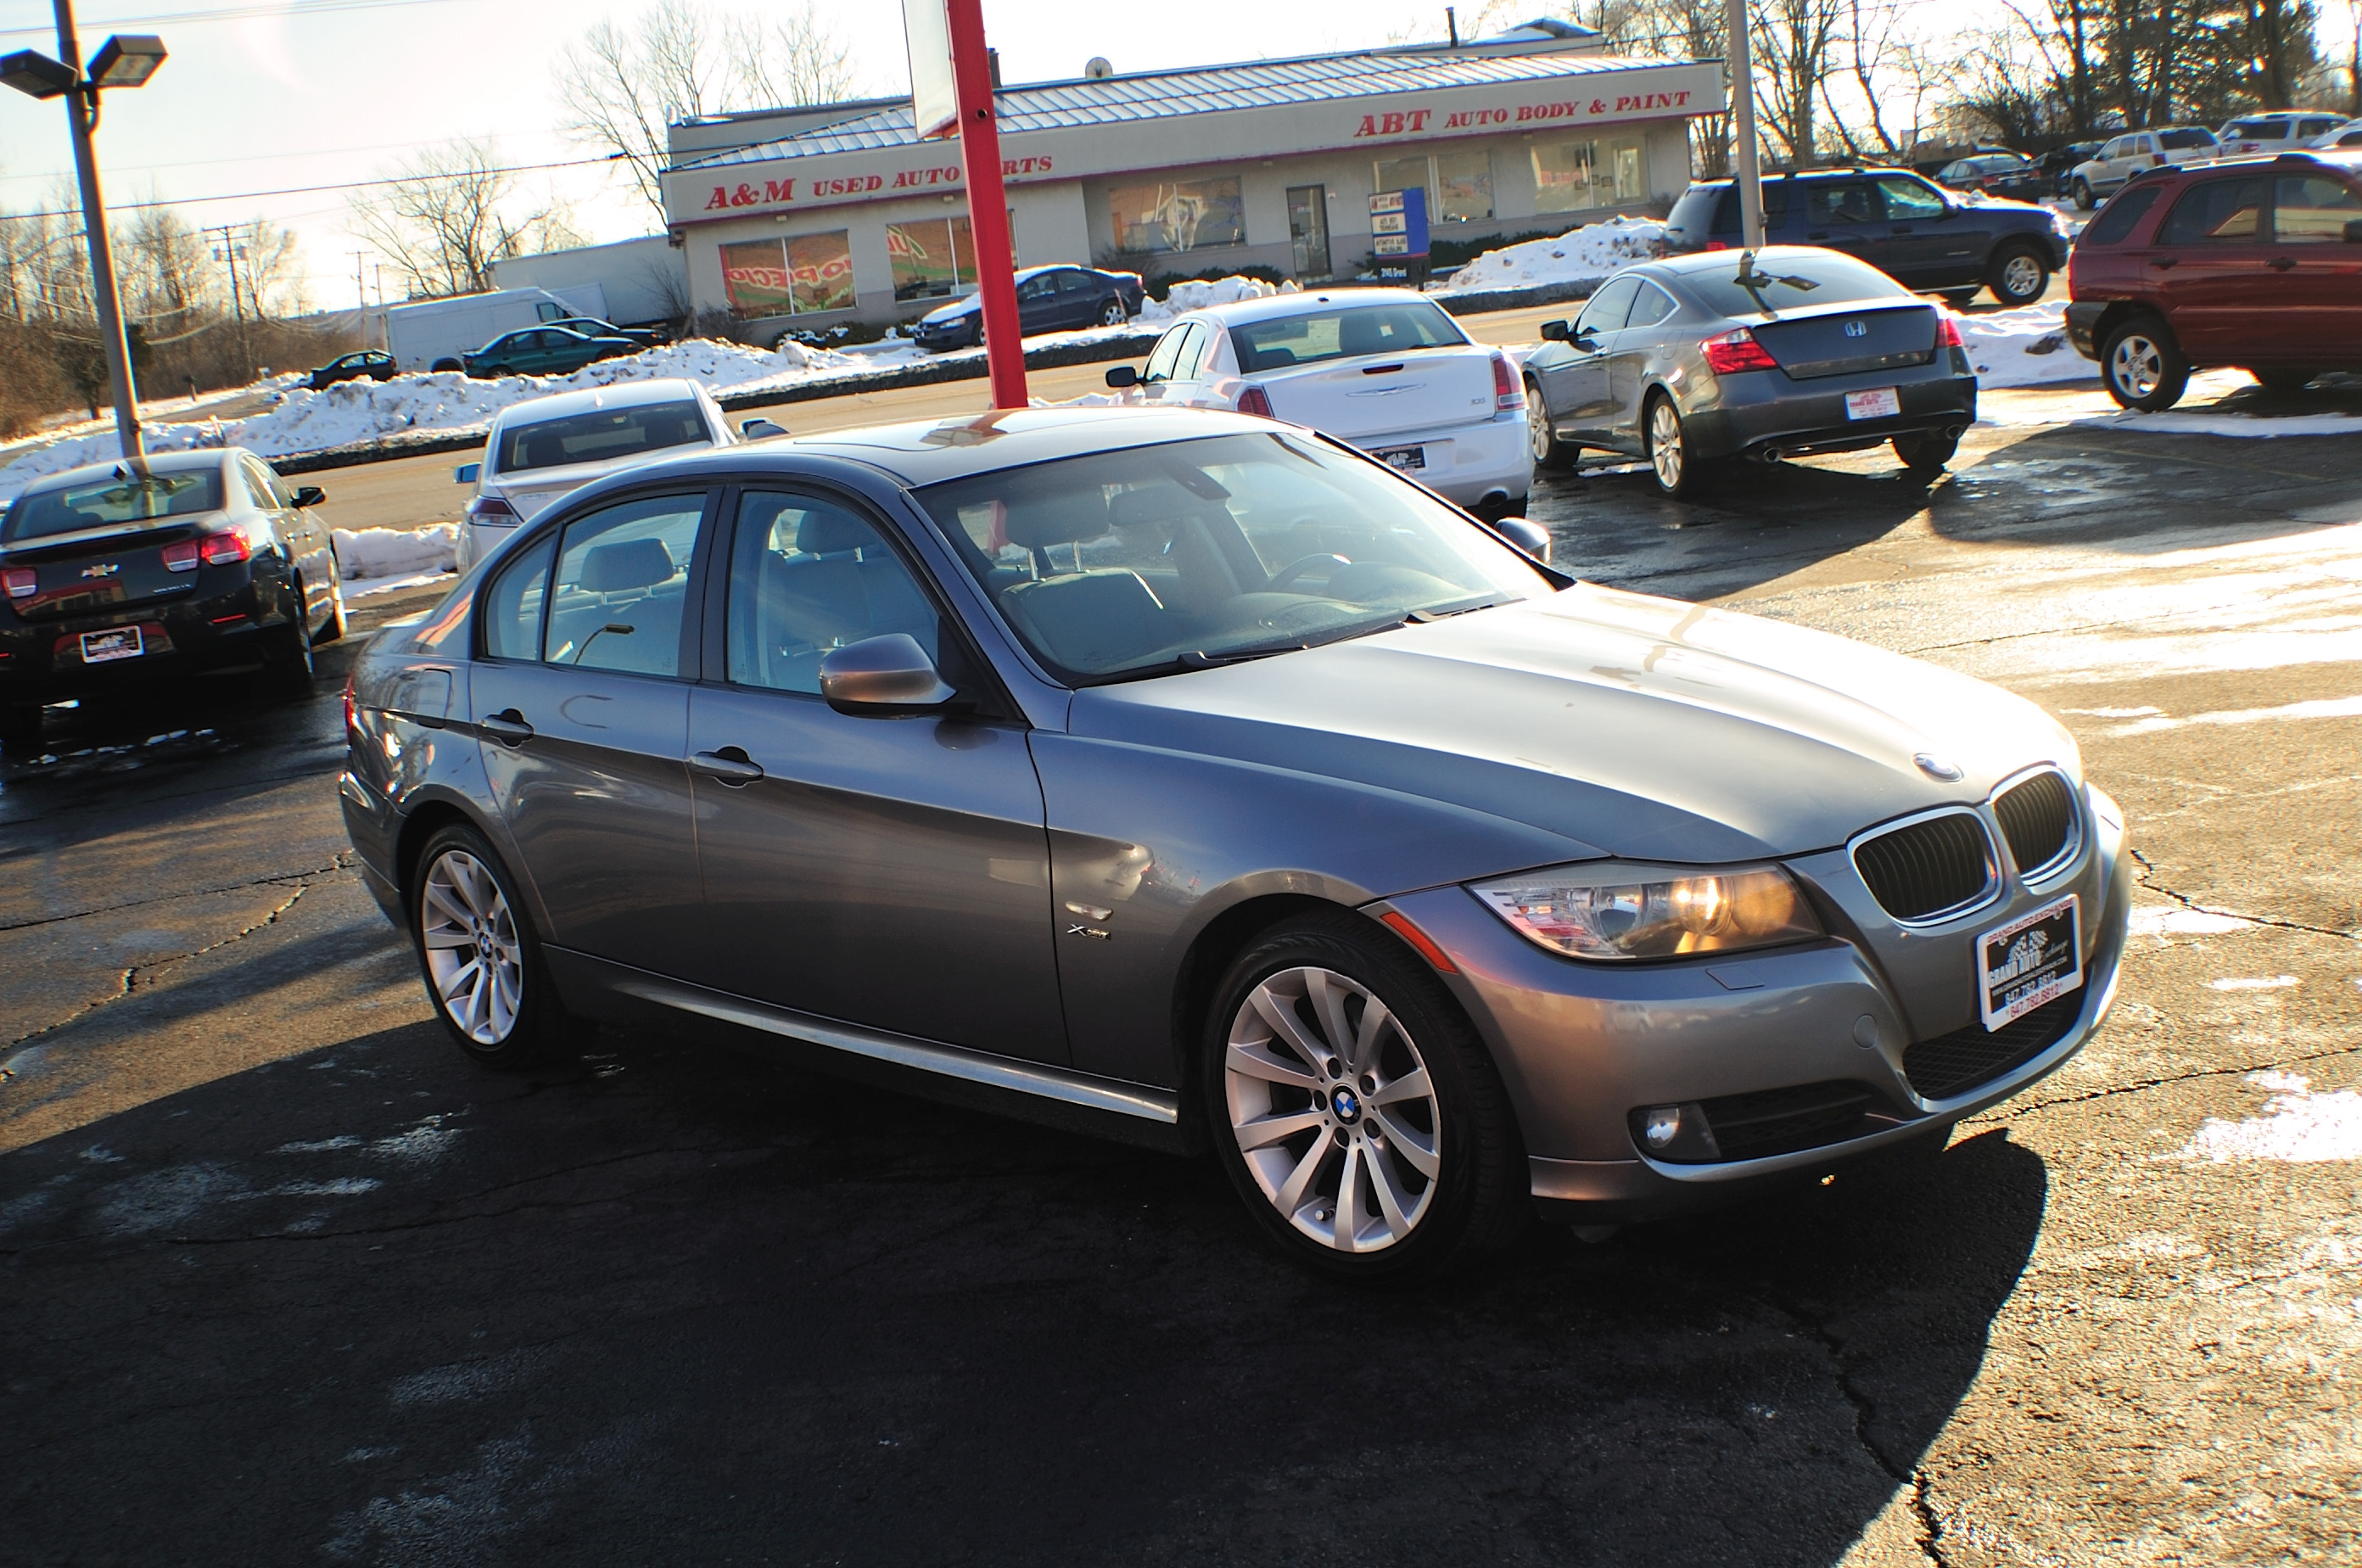 2009 BMW 328i Blue Used Sport Sedan Sale Bannockburn Barrington Beach Park